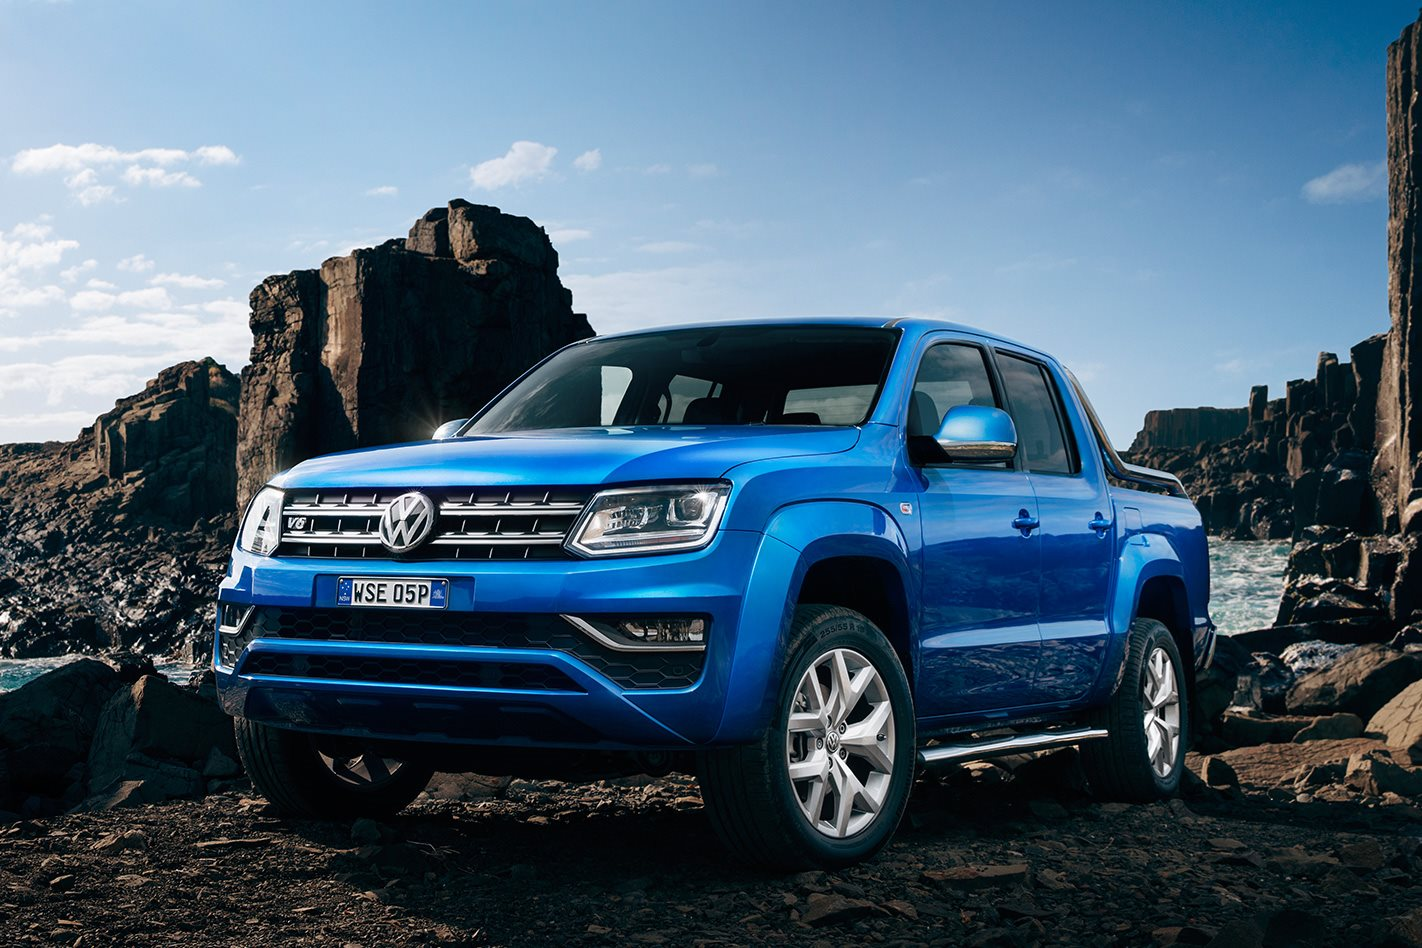 2017 volkswagen amarok v6 first drive 4x4 australia. Black Bedroom Furniture Sets. Home Design Ideas